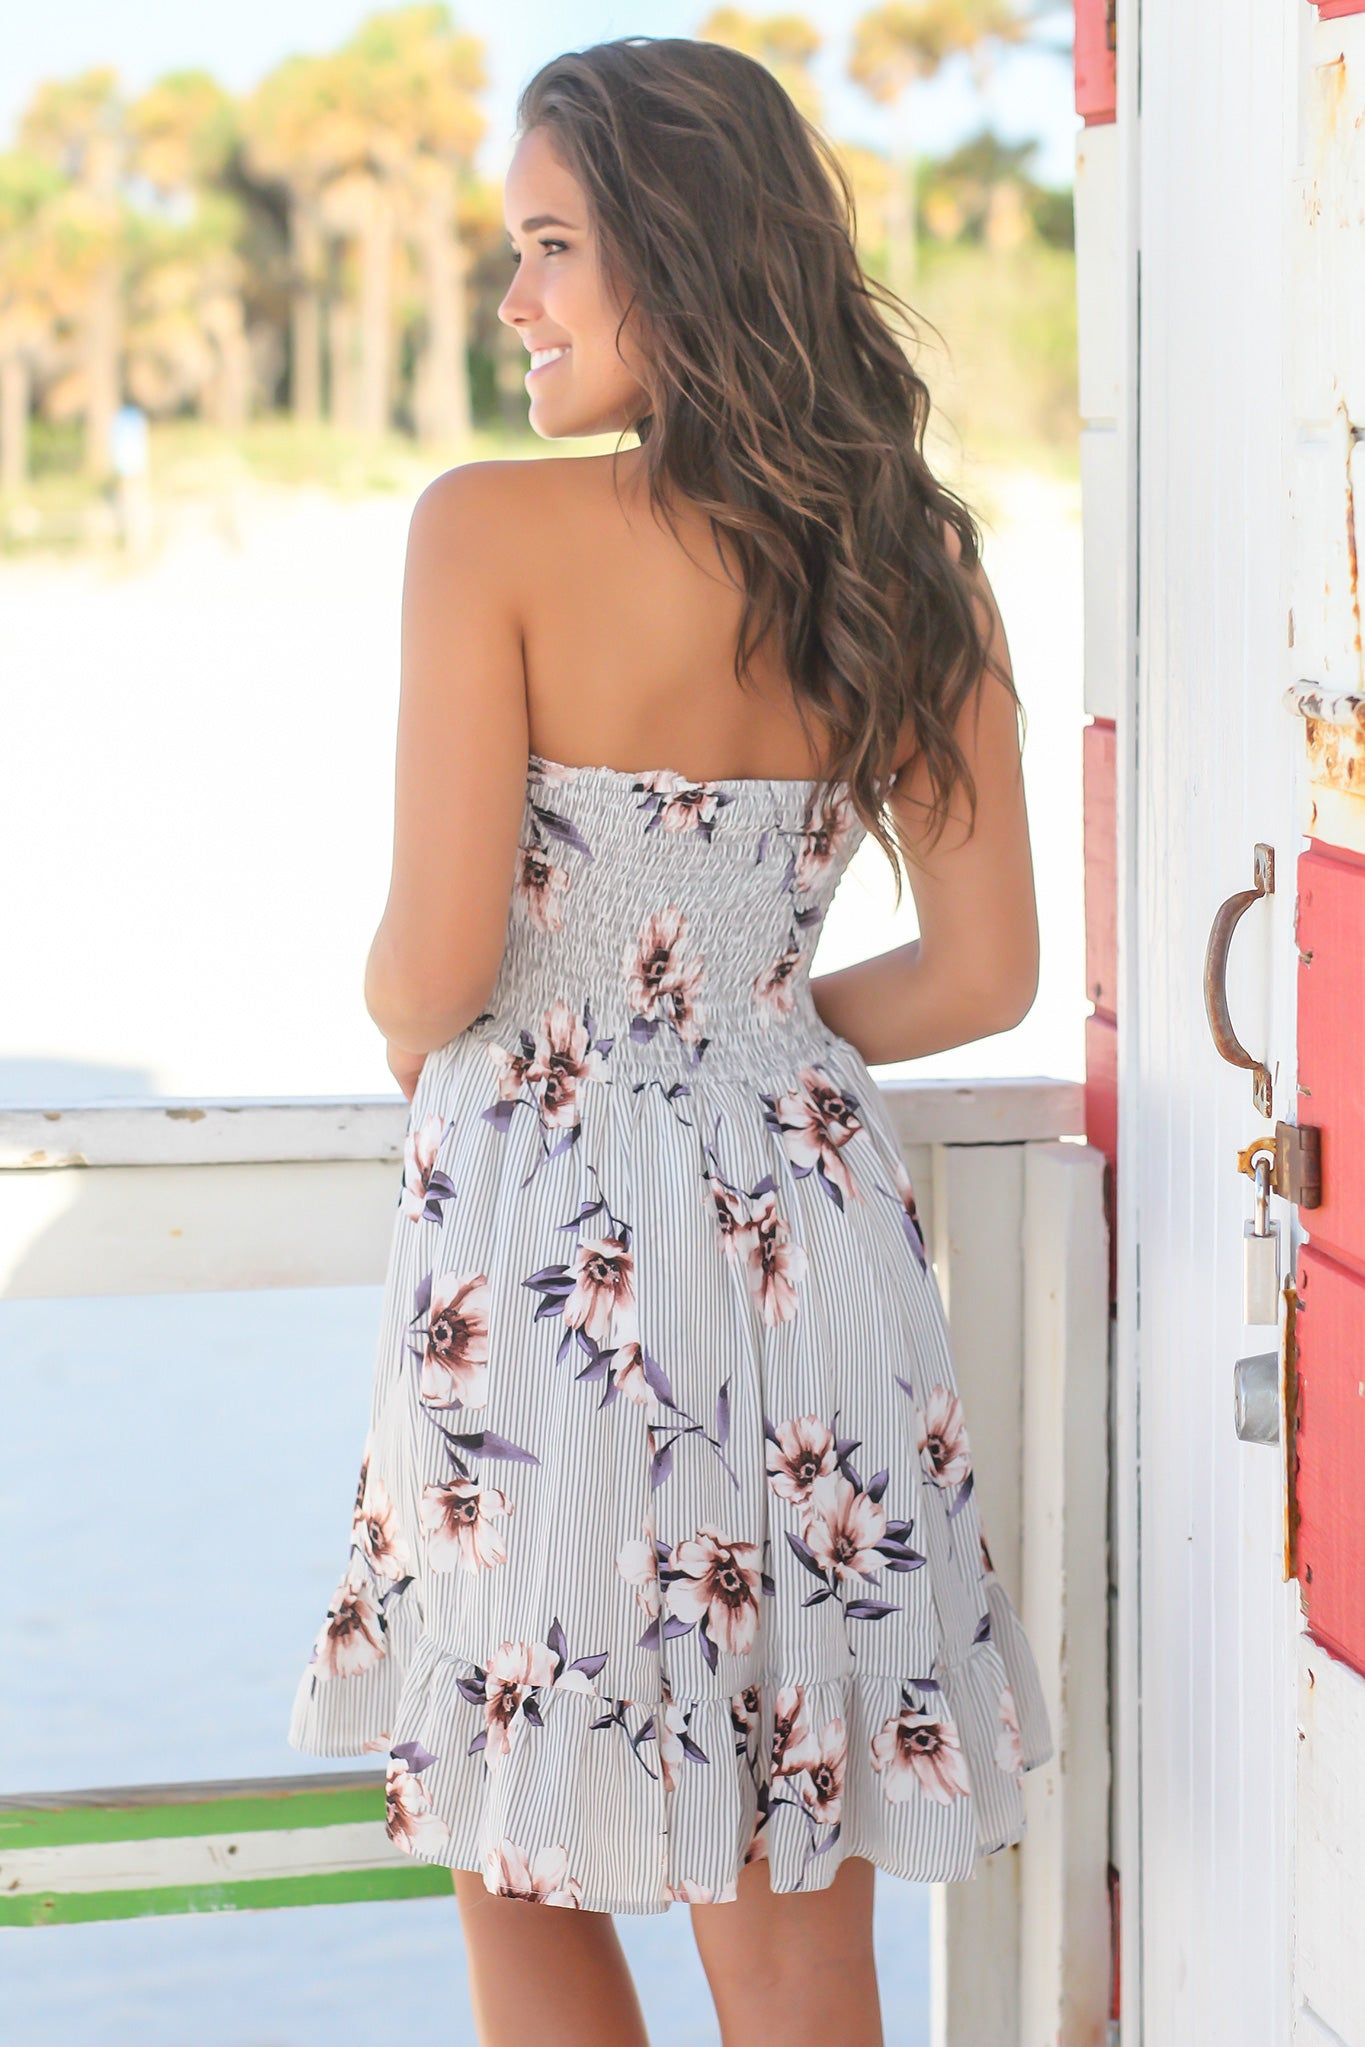 Gray Floral Strapless Short Dress